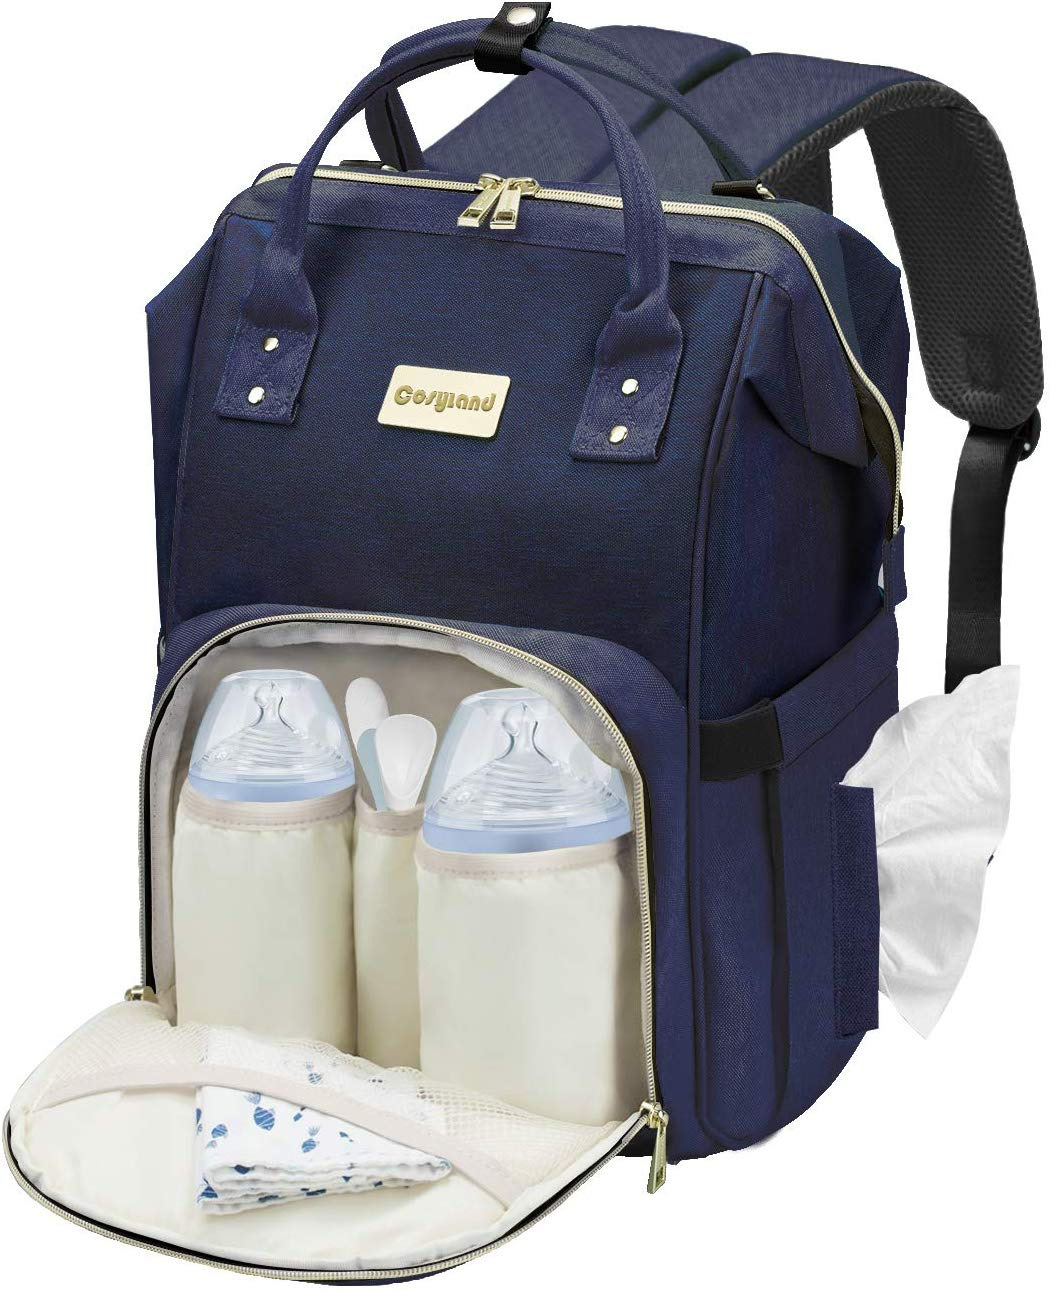 Cosyland Diaper Bag Backpack for Mom Blue - iBuy Africa